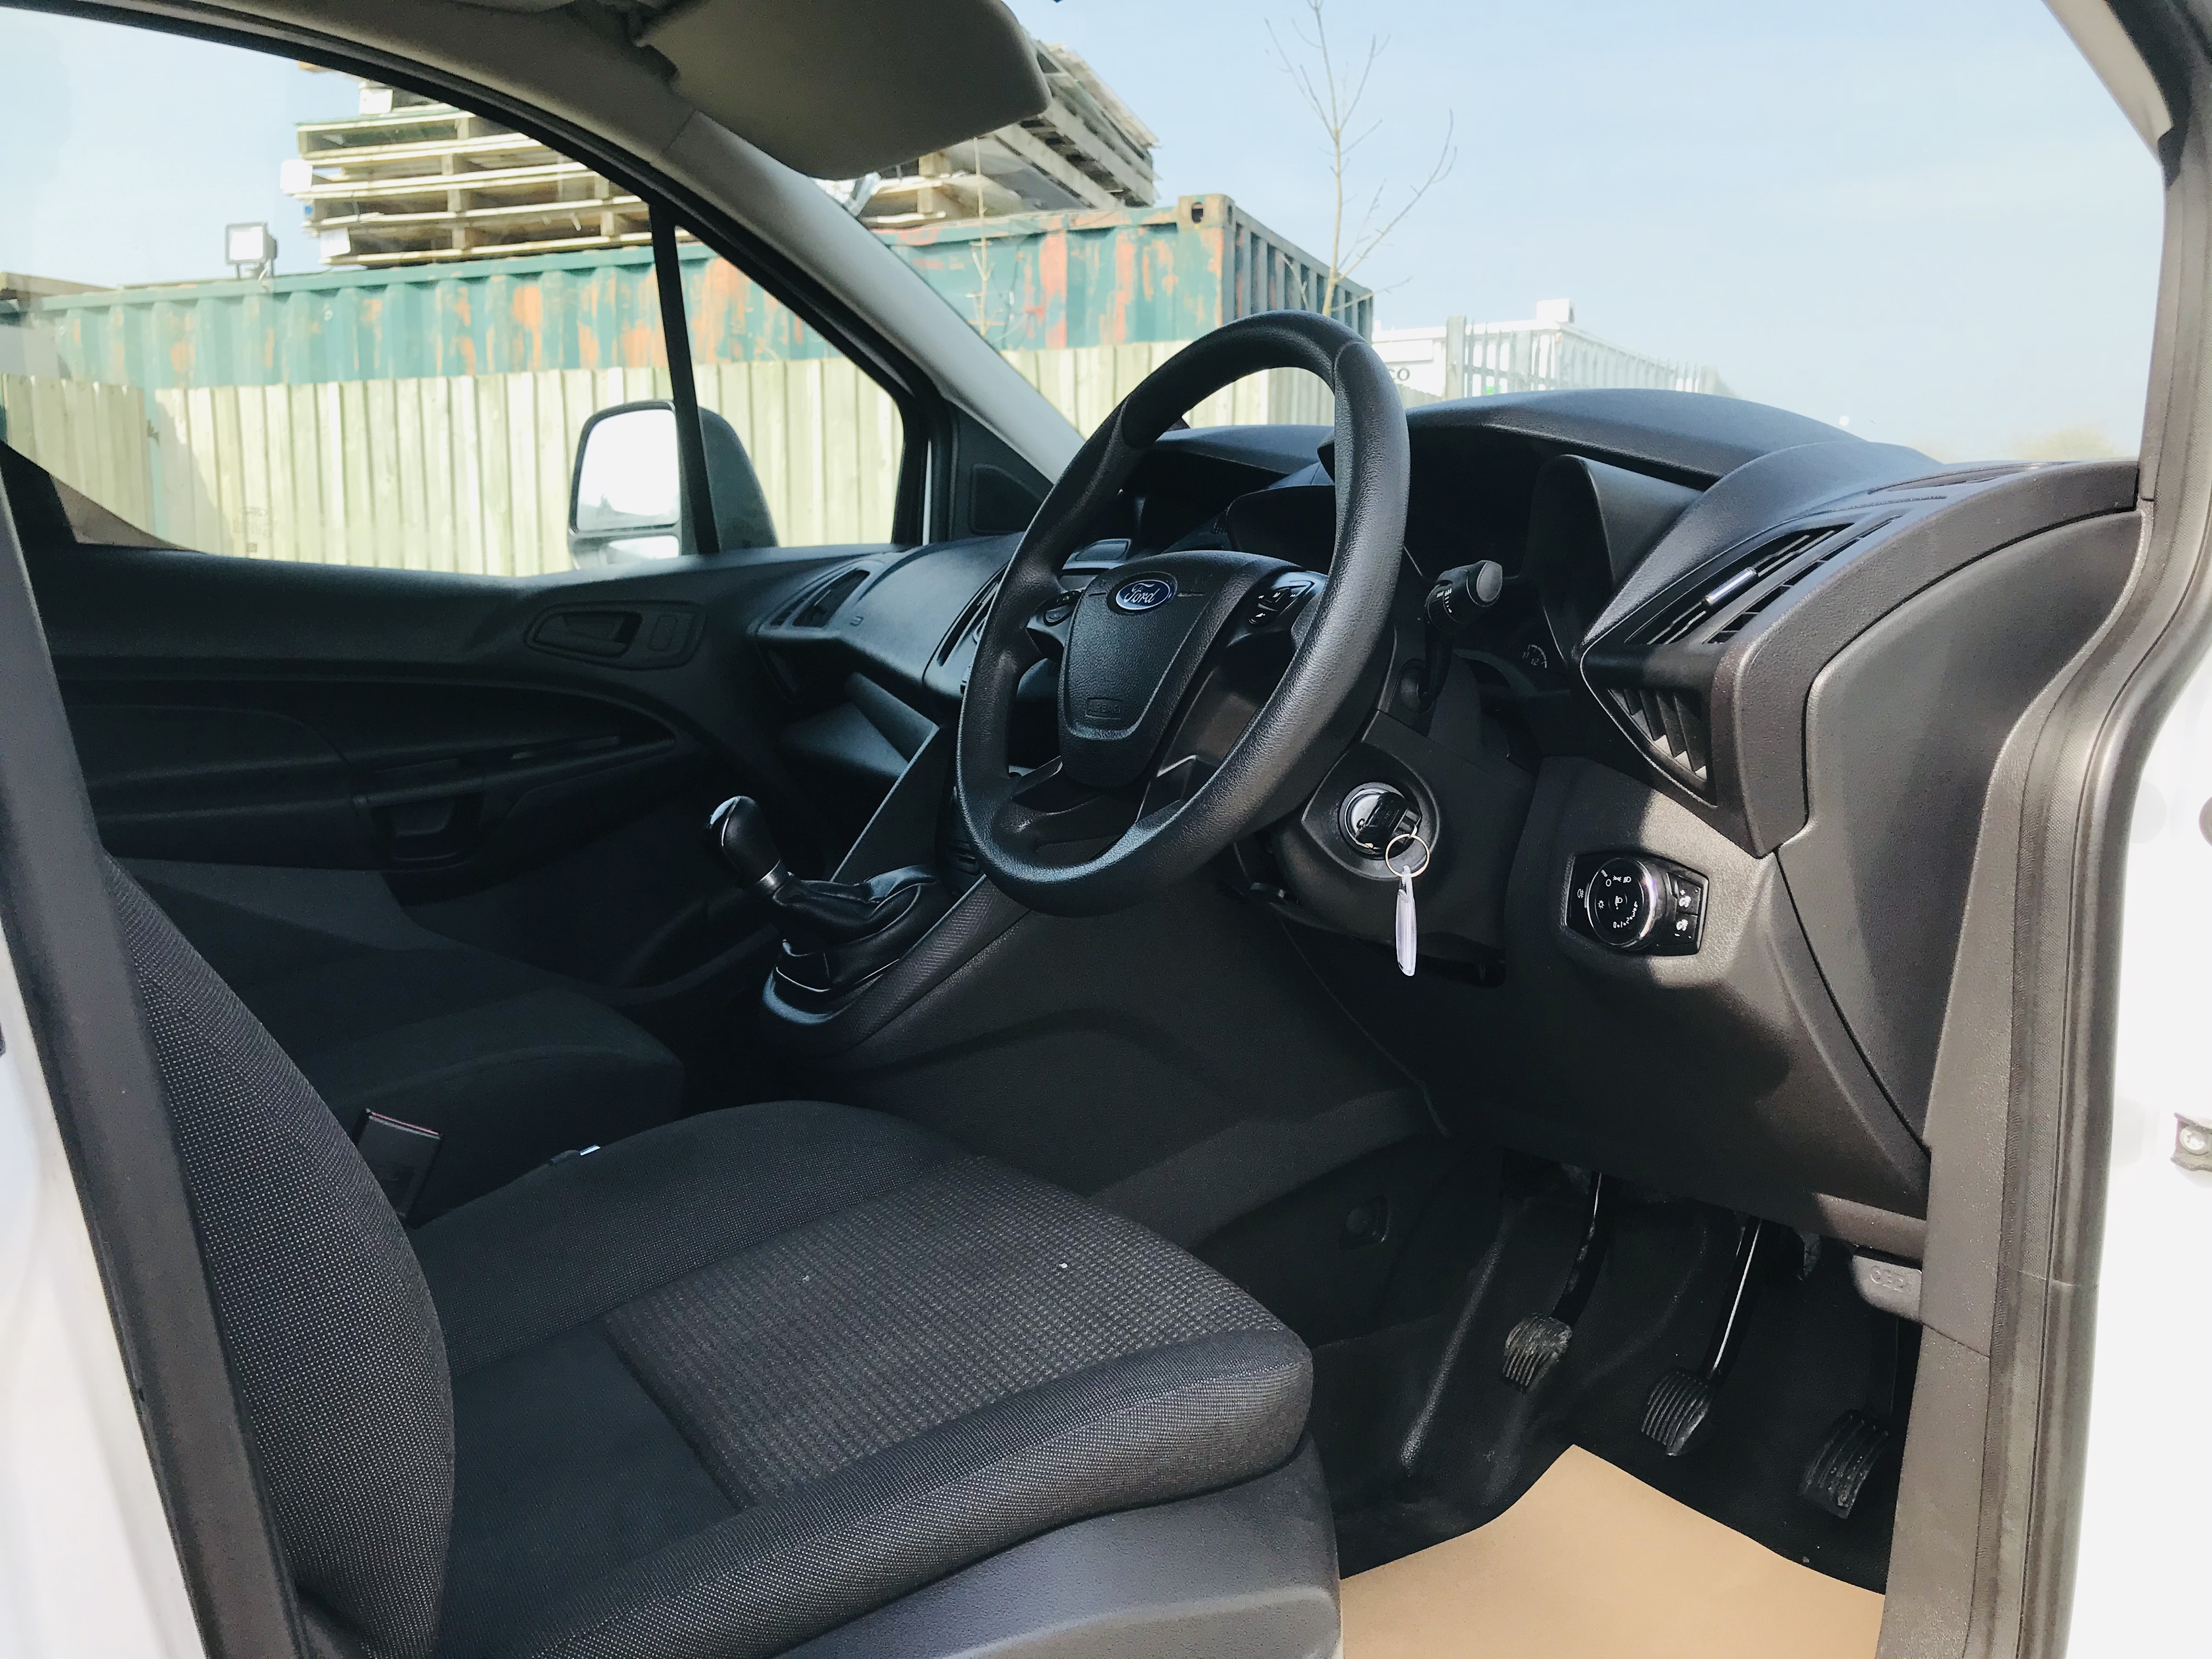 """ON SALE FORD TRANSIT CONNECT 1.6TDCI ECO-TECH 'LWB' 2017 REG - 1 OWNER - FSH - EURO 6""""ULEZ COMPLIANT - Image 14 of 30"""